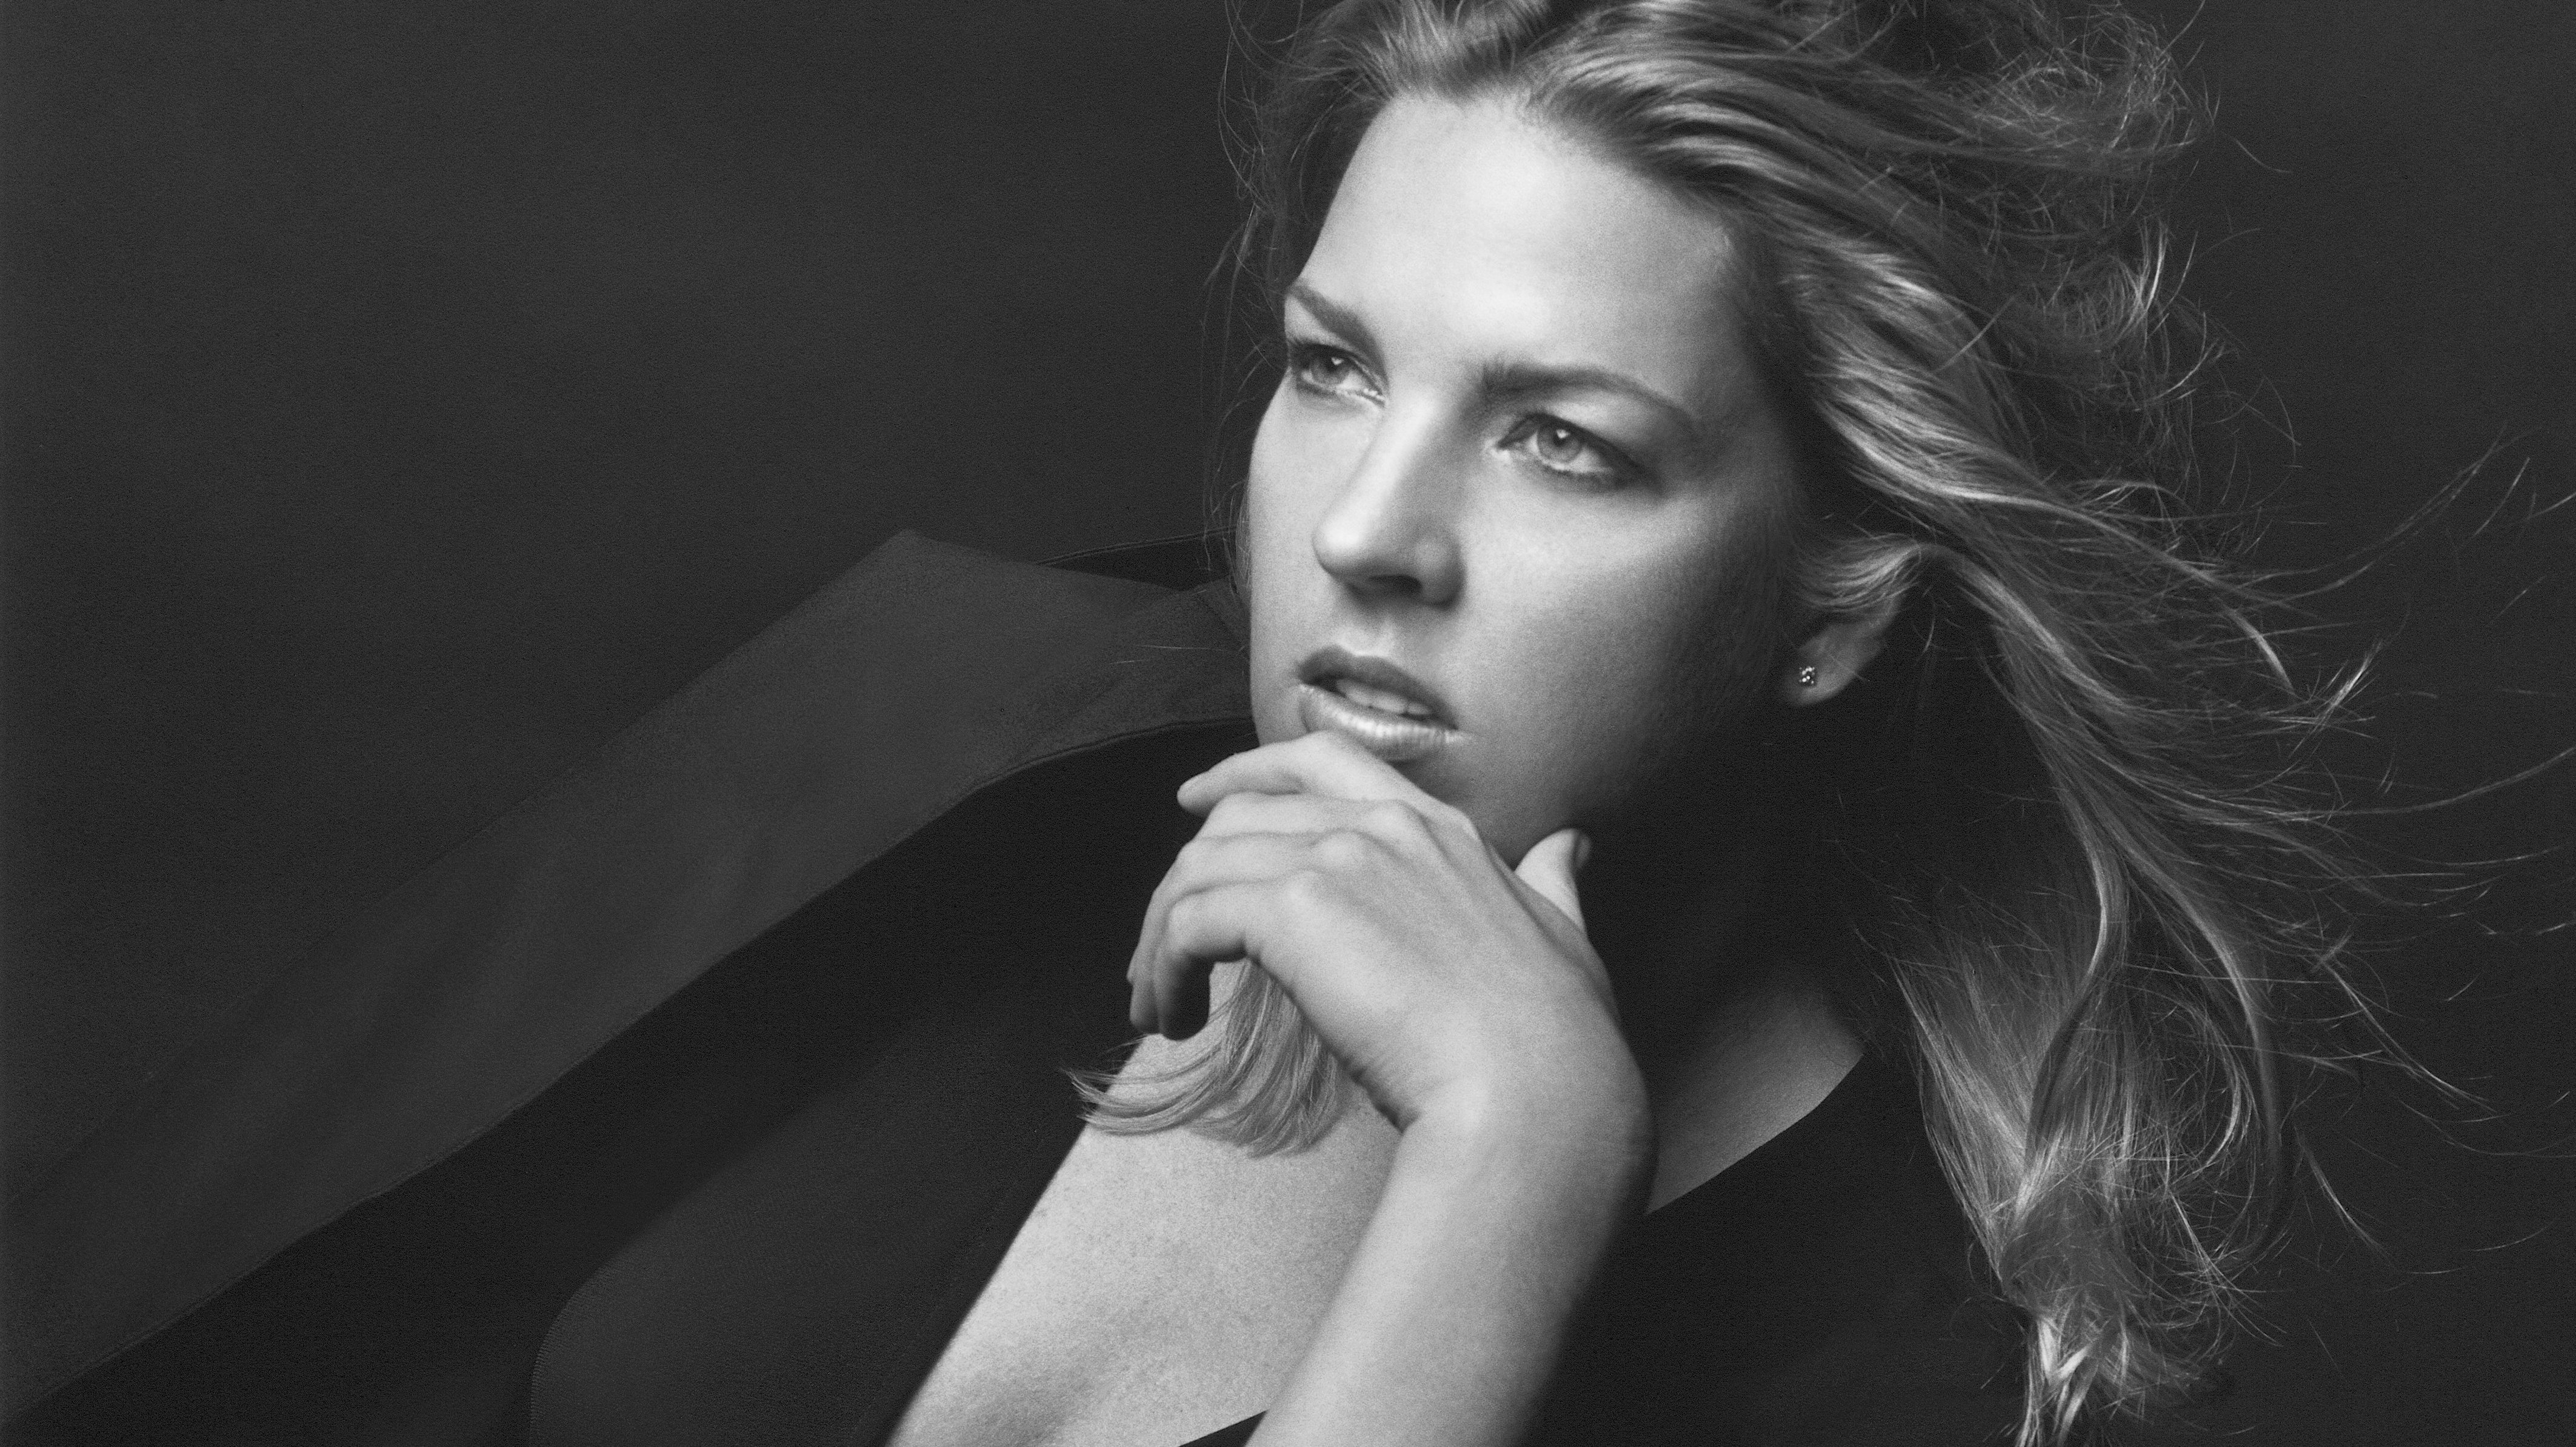 diana krall слушатьdiana krall temptation, diana krall слушать, diana krall скачать, diana krall cry me a river, diana krall california dreamin, diana krall - the look of love, diana krall live in paris, diana krall wallflower, diana krall when i look in your eyes, diana krall fly me to the moon, diana krall temptation lyrics, diana krall - s wonderful, diana krall - glad rag doll, diana krall besame mucho скачать, diana krall cry me a river lyrics, diana krall - temptation перевод, diana krall temptation слушать, diana krall wiki, diana krall - quiet nights, diana krall - besame mucho